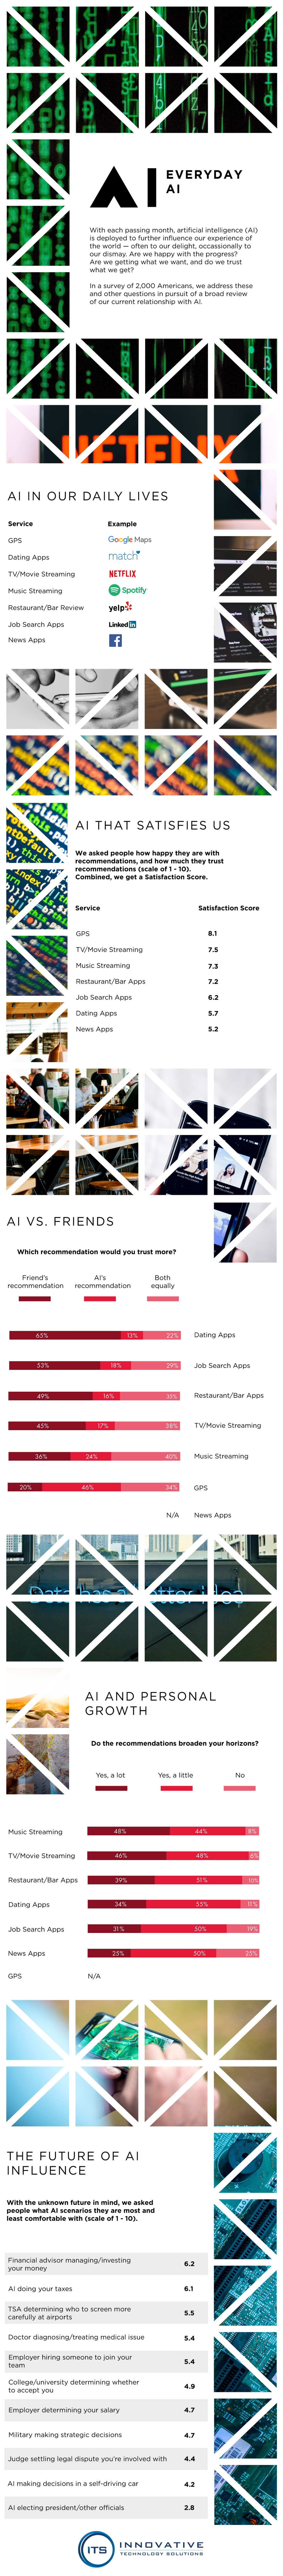 Study reveals which AI-driven apps consumers trust the most